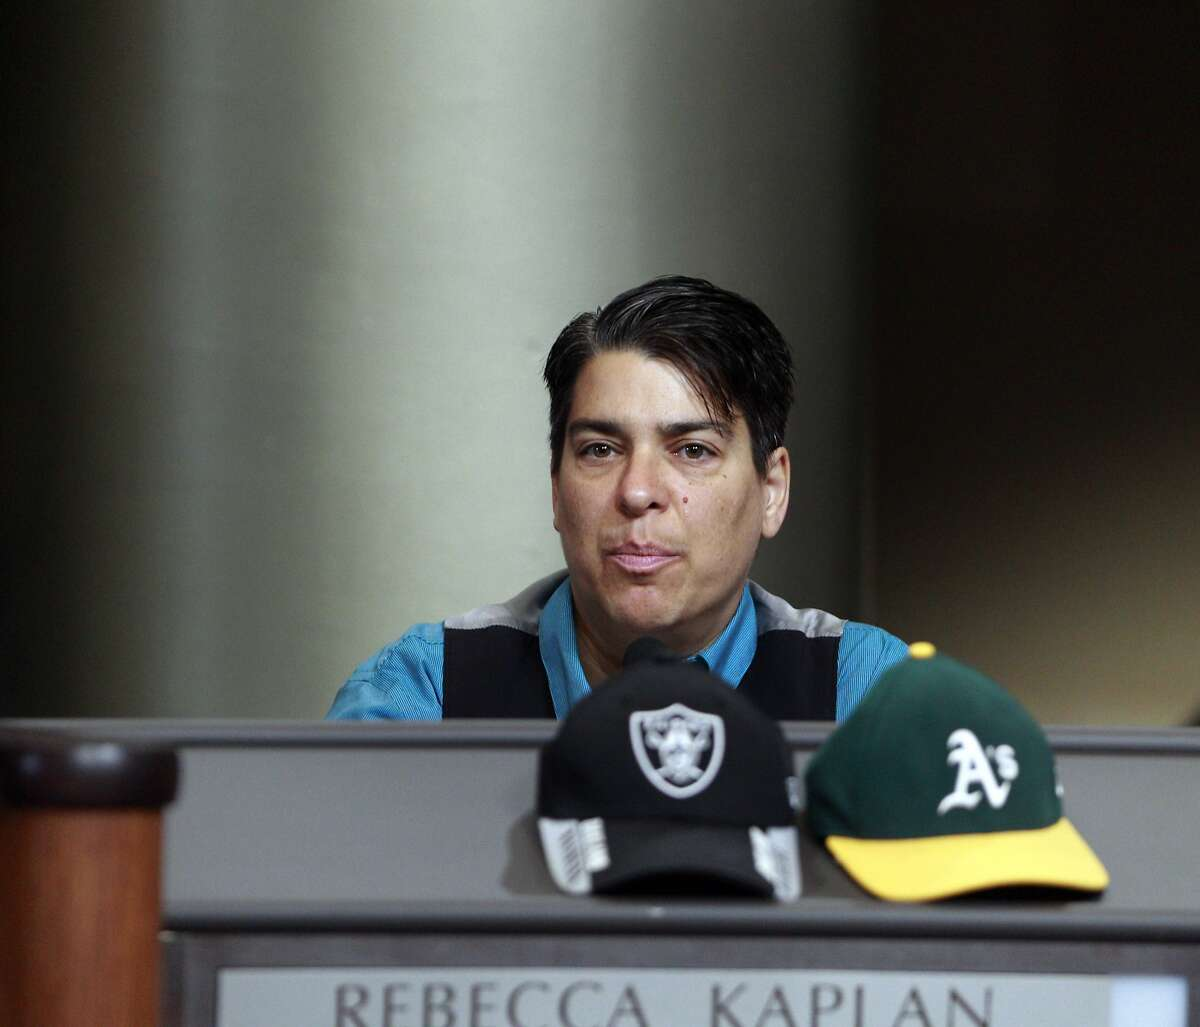 Supervisor Rebecca Kaplan addresses the council after public comment during Wednesday's council meeting. The Oakland City Council voted to revise the proposed lease agreement with the Oakland Athletics on Wednesday night, July 16, 2014, during a special session in Oakland, Calif. The revised lease must be approved bythe Coliseum Authorityand the Athletics now.